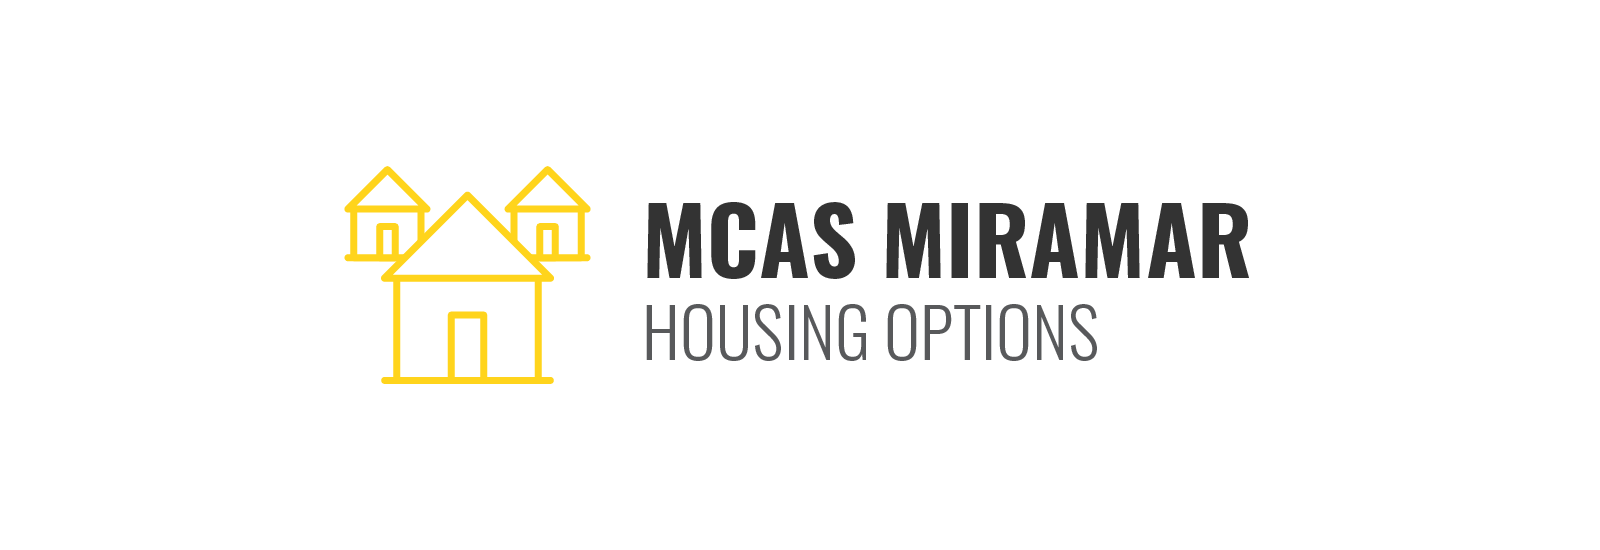 MCAS Miramar Housing Options